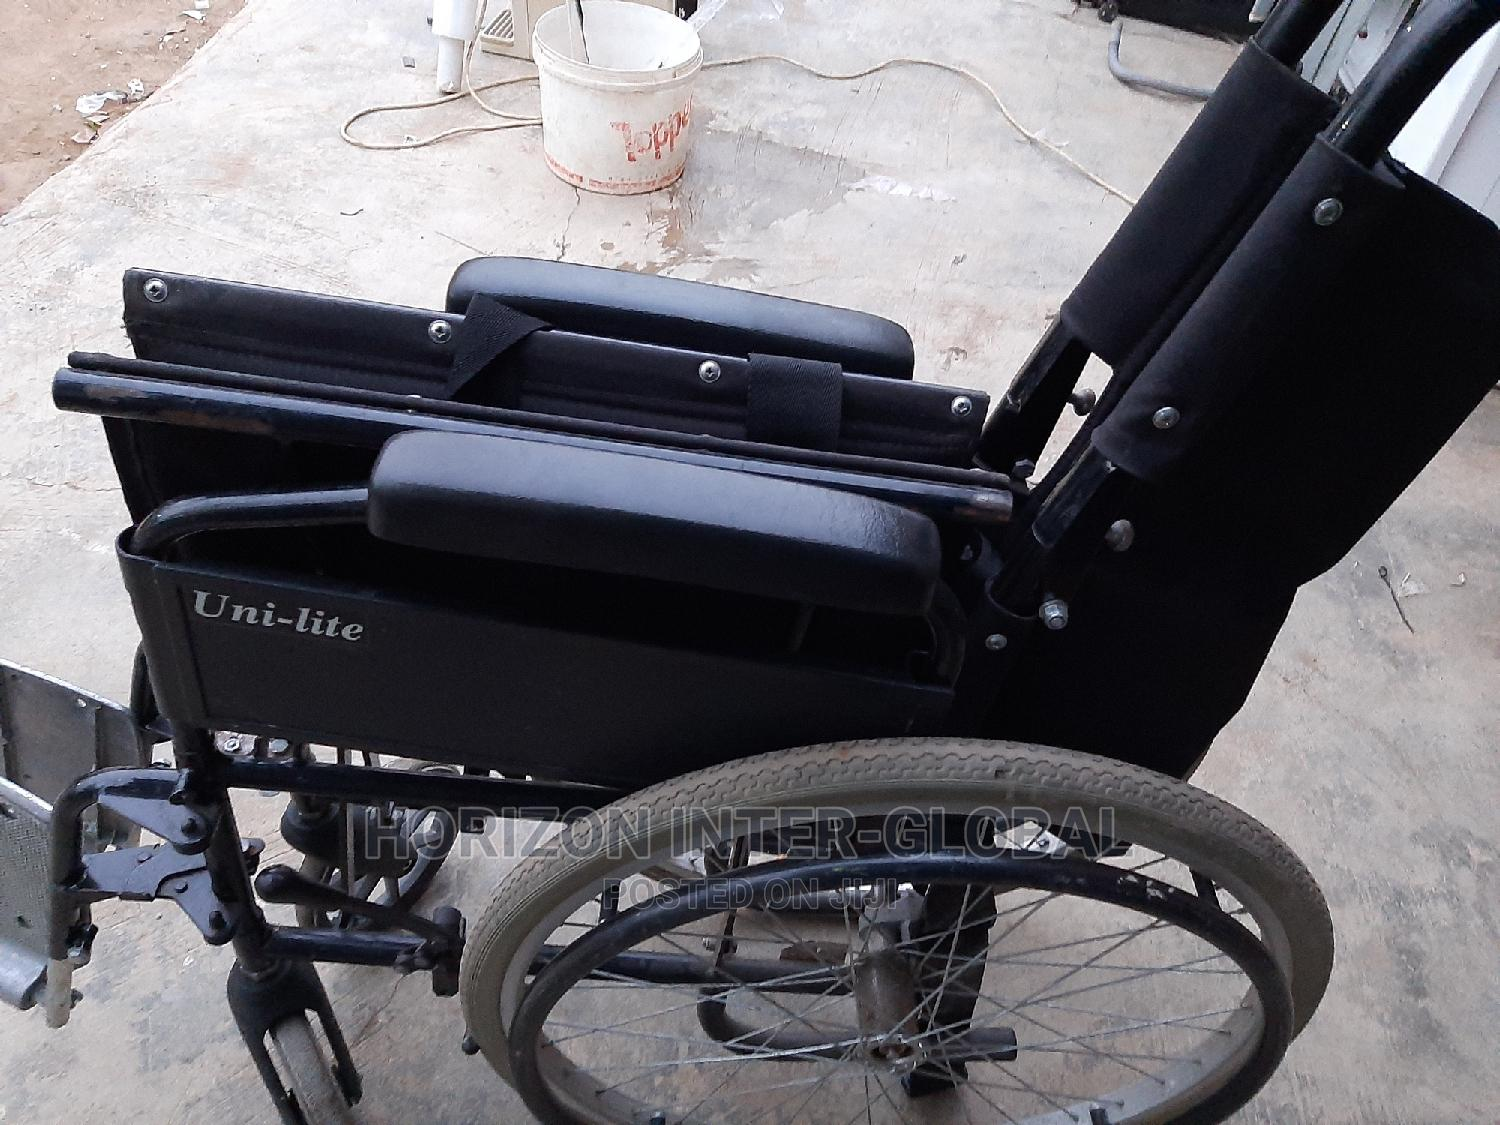 Uni-lite Collapsible/Foldable Wheelchair